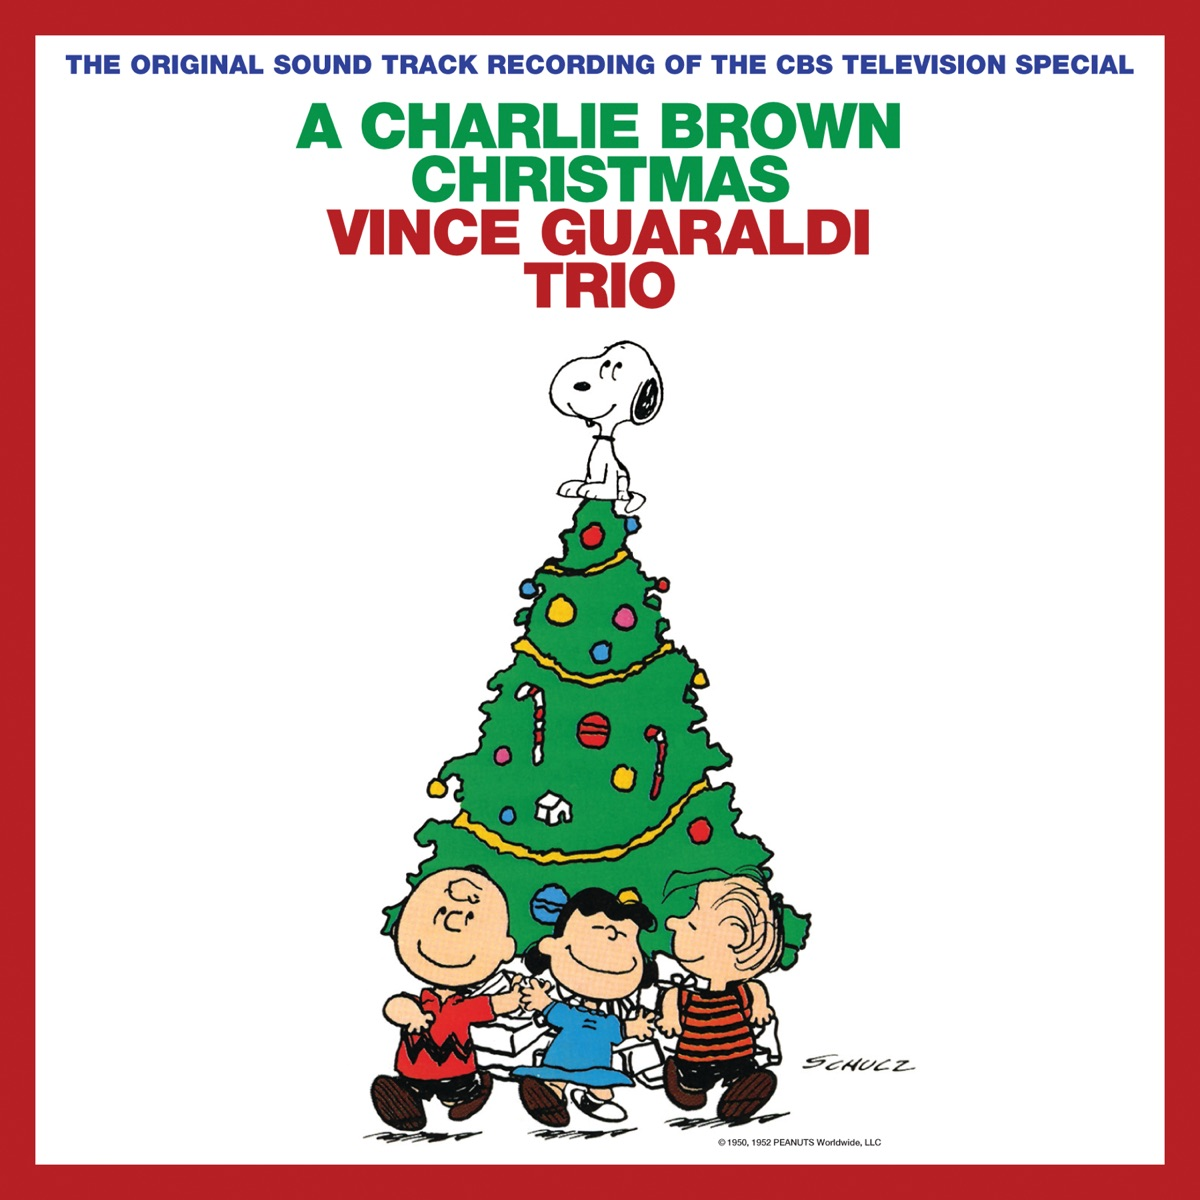 A Charlie Brown Christmas Expanded Edition Vince Guaraldi Trio CD cover